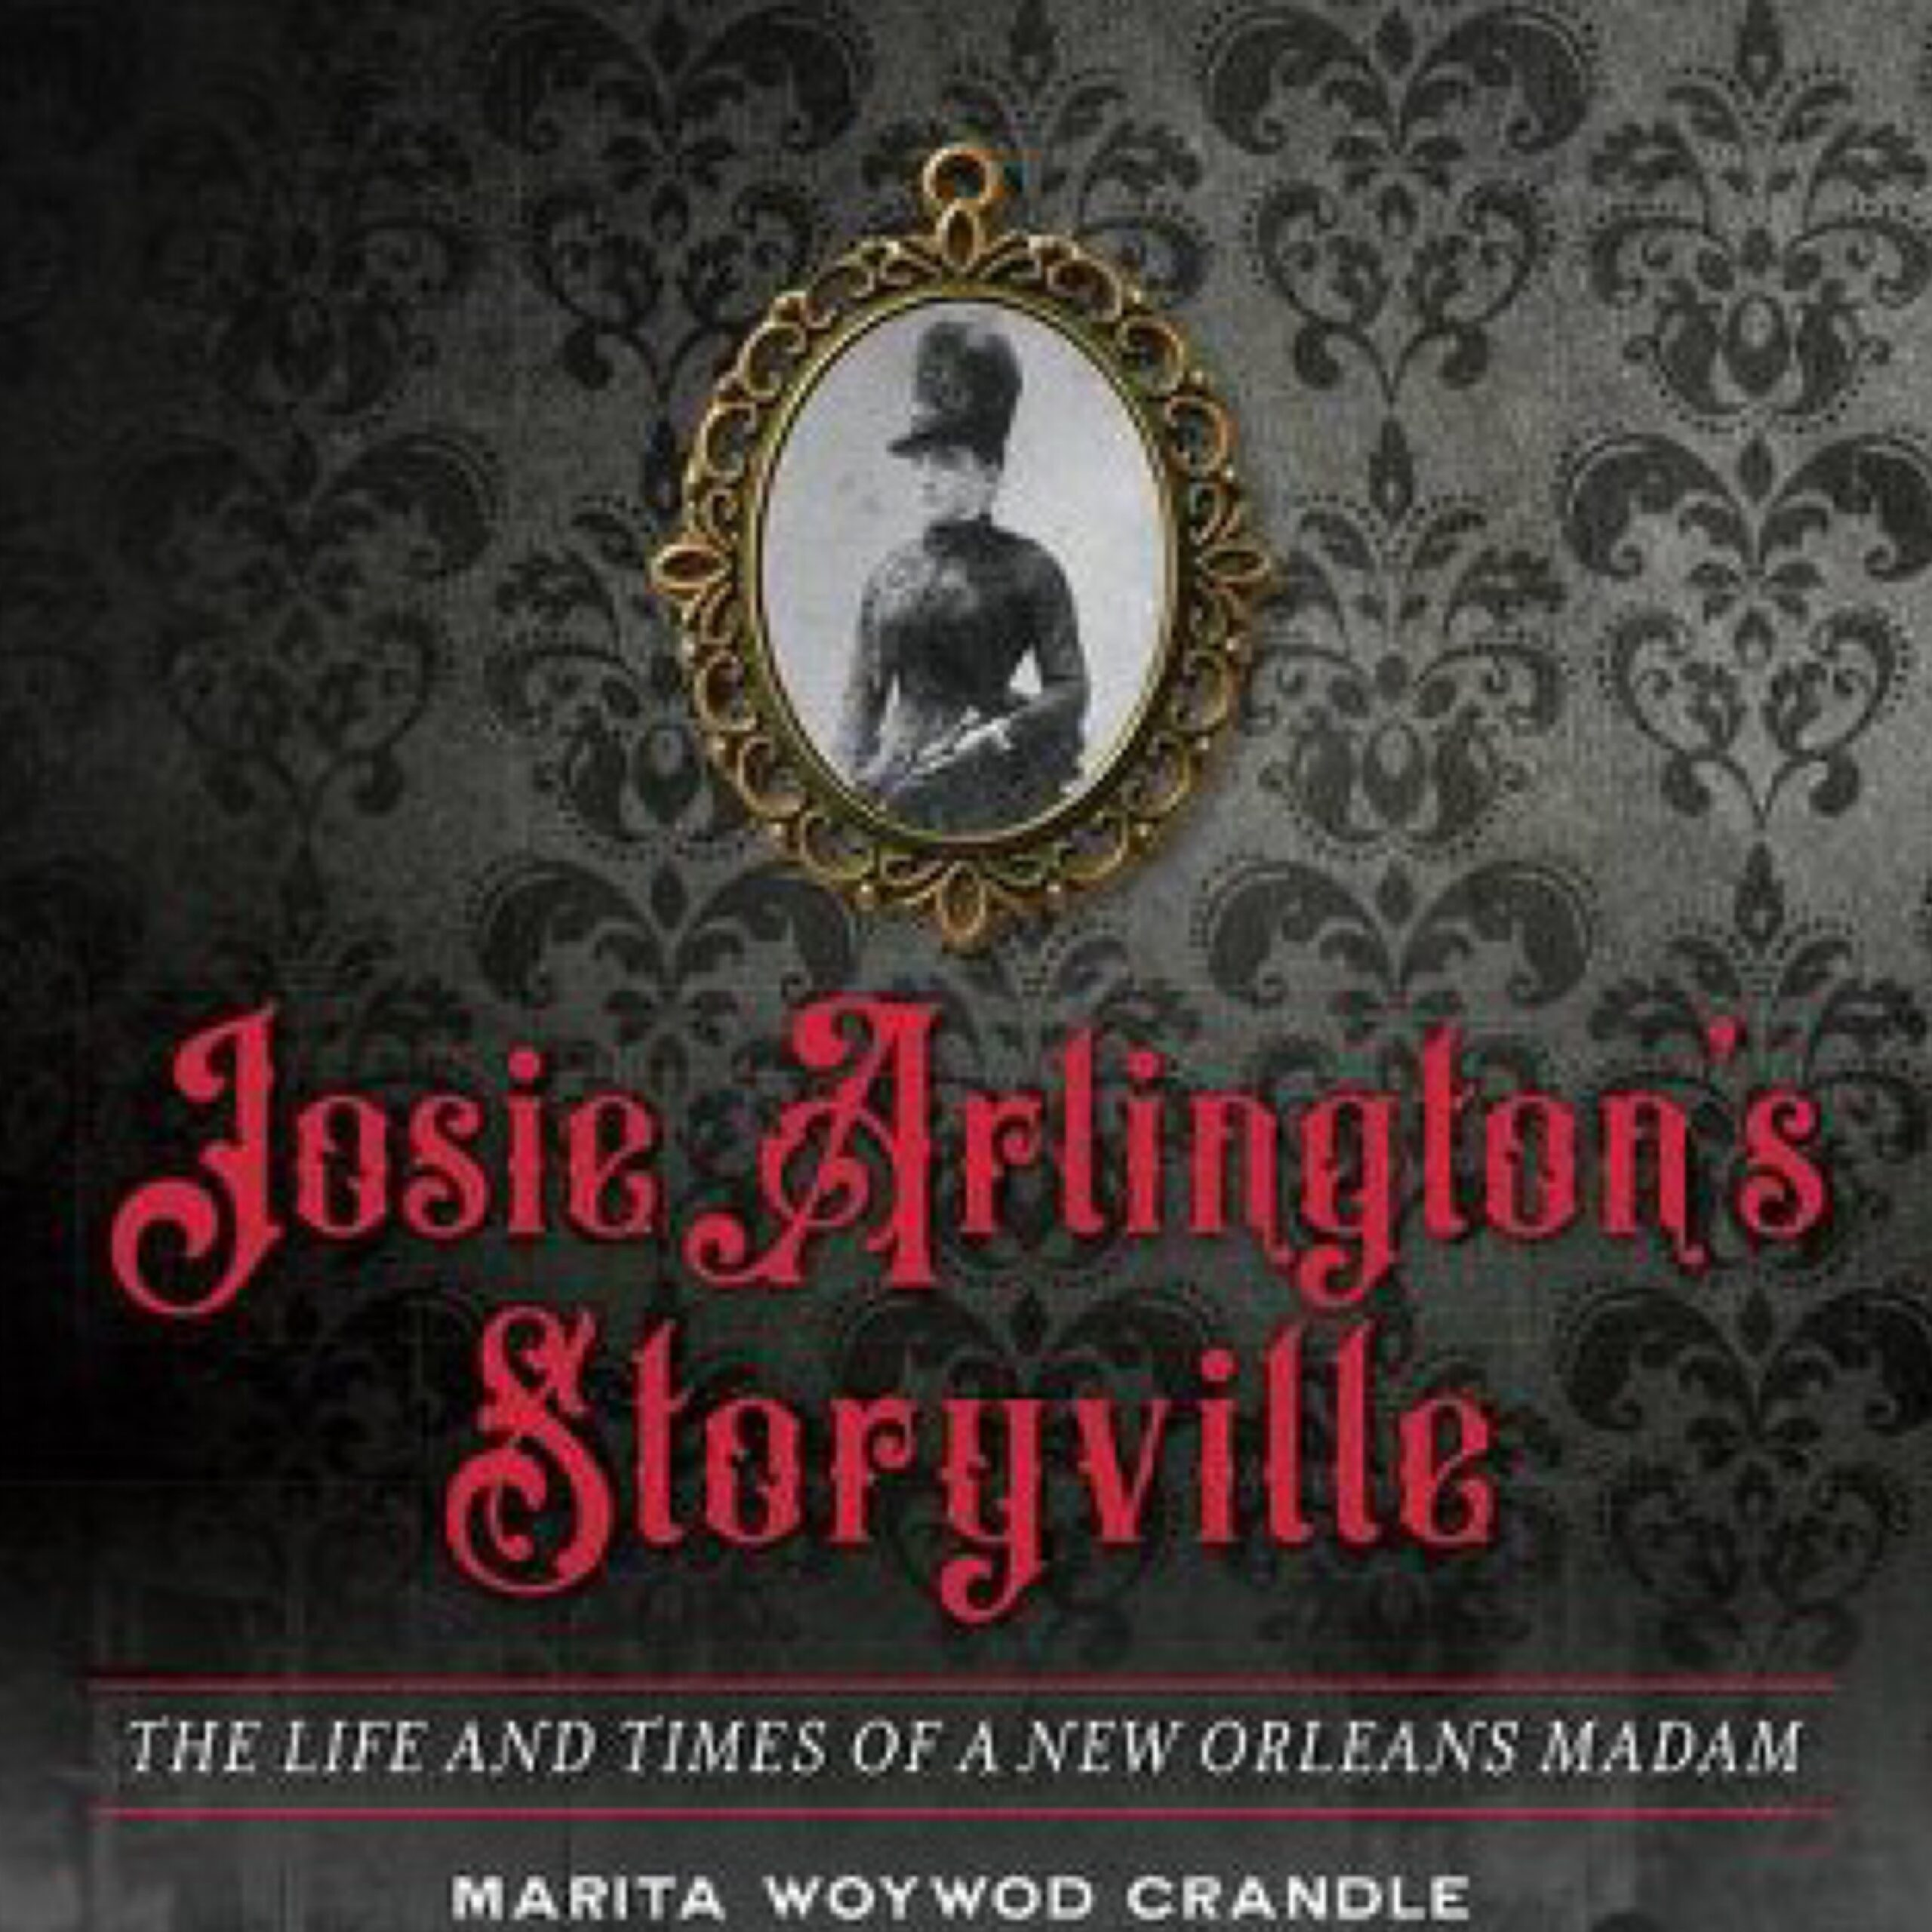 dr-tumbletys-pittsburgh-pennsylvania-allentown-hilltop-inspired-by-spirits-distilling-co-storyville-lounge-josie-arlington-storyville-the-life-and-times-of-a-new-orleans-madam-marita-woywod-crandle-red-light-district-nola-louisiana